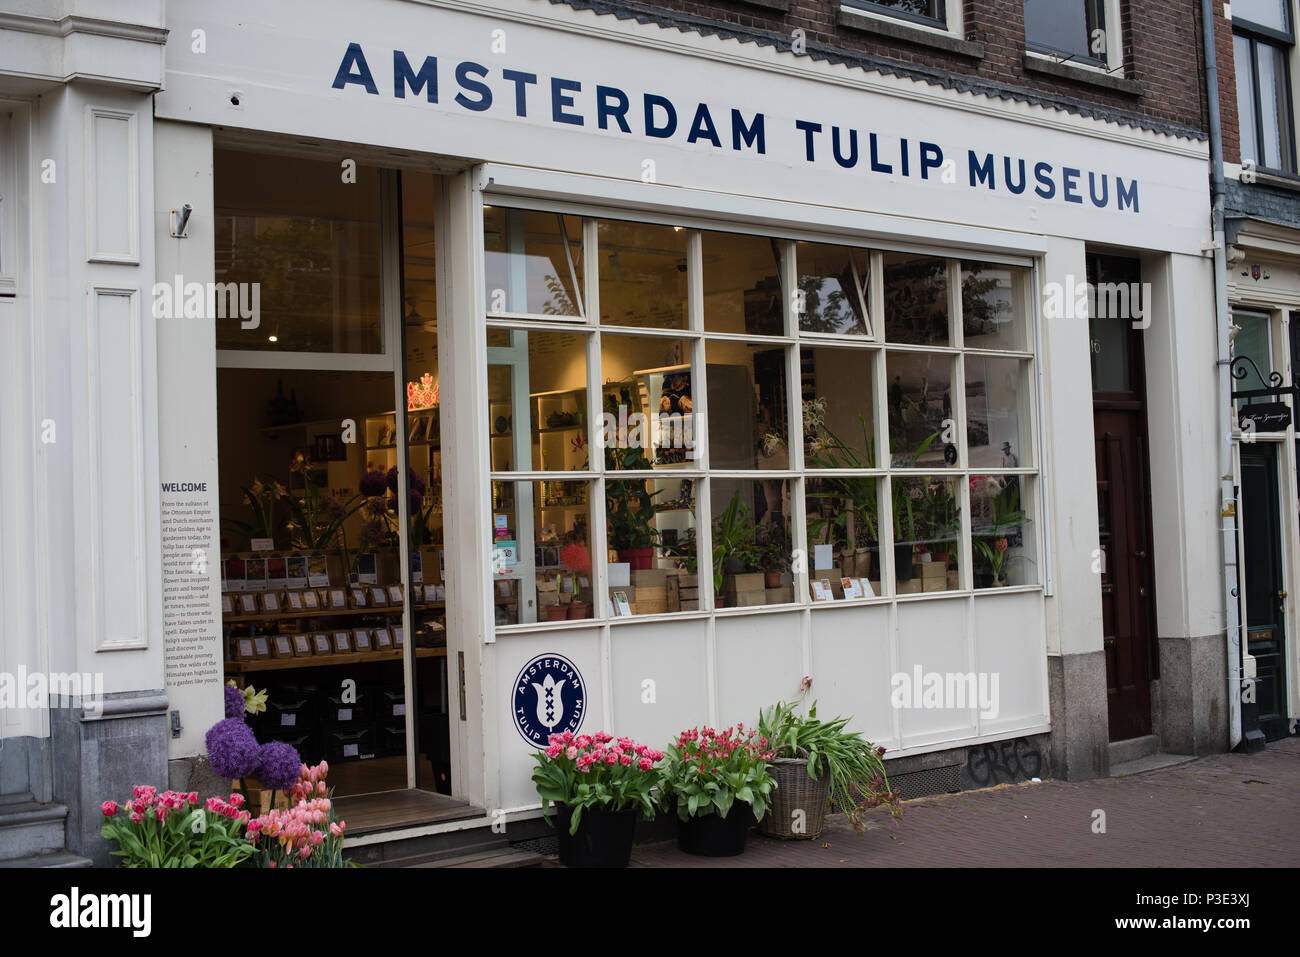 Amsterdam tulip museum in the canal district - Stock Image